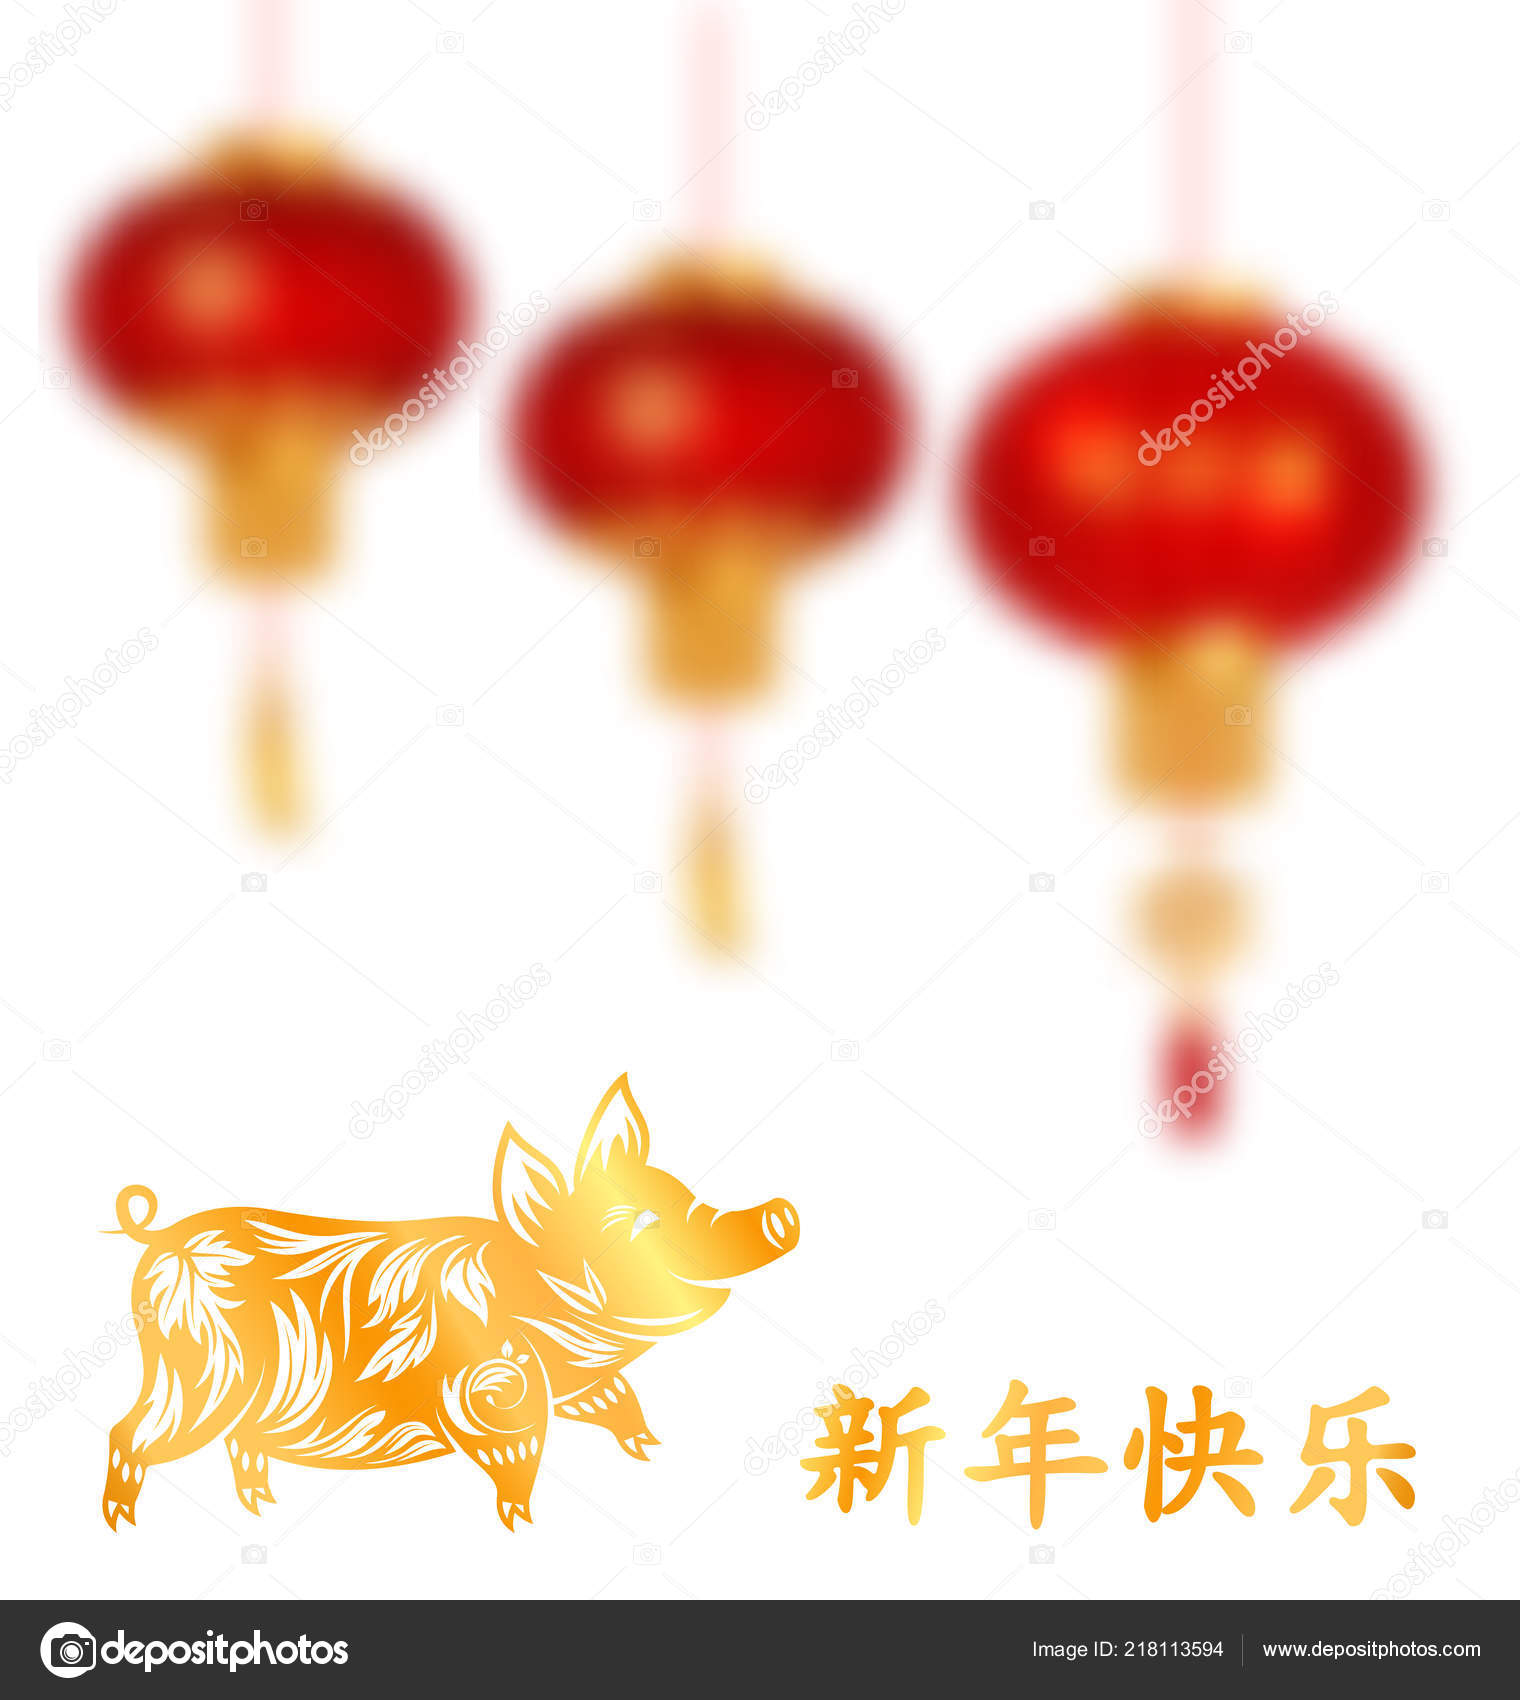 happy chinese new year card with golden pig symbol and lanterns translation chinese characters happy new year illustration vector vector by smeagorl